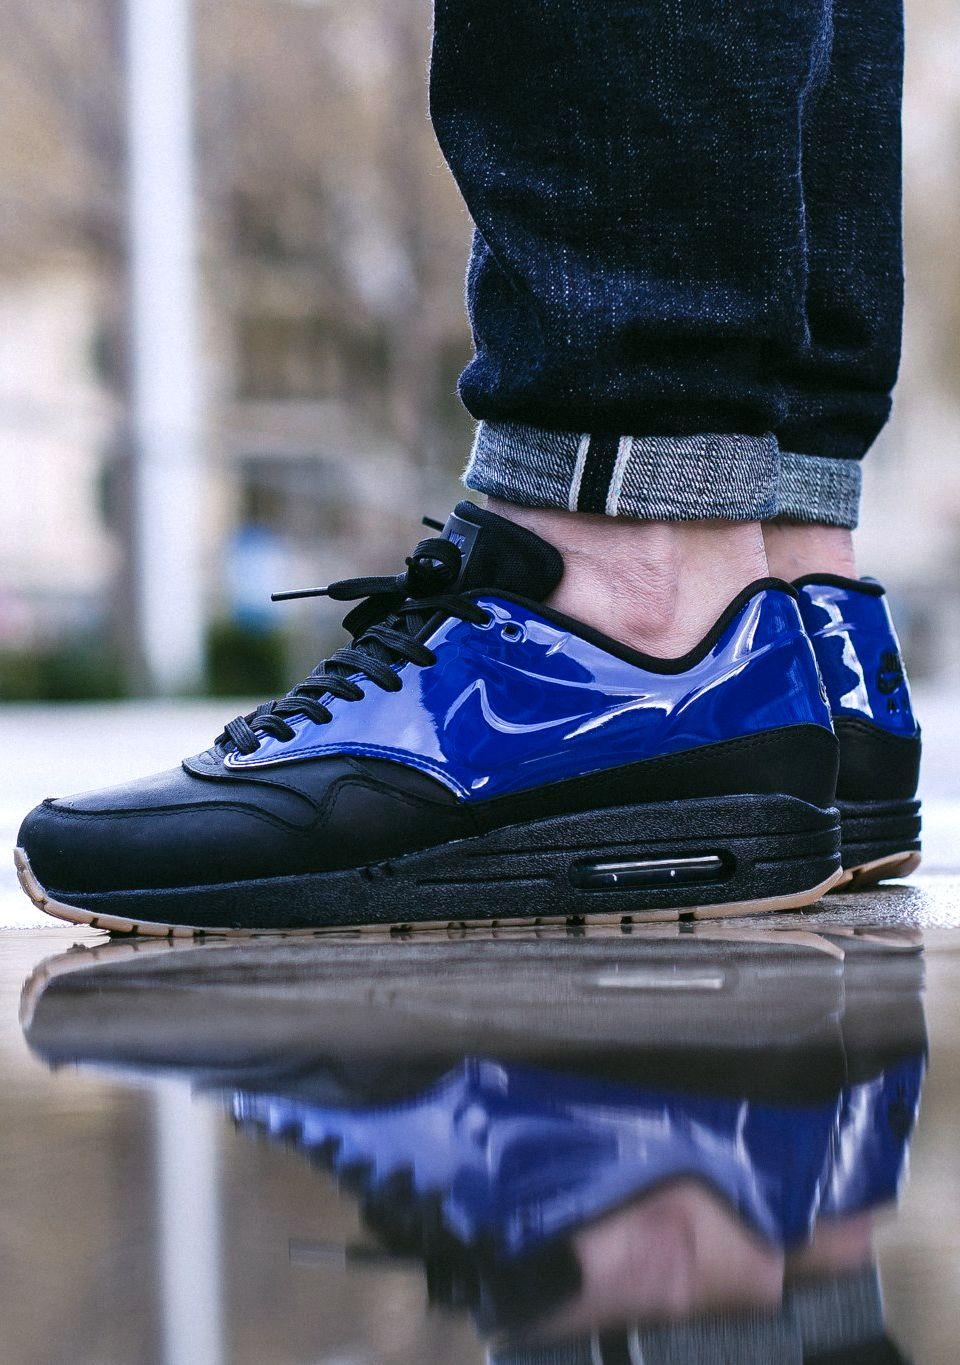 SPORTSWEAR FIX: Nike Air Max 1 VT QS 'Deep Royal Blue